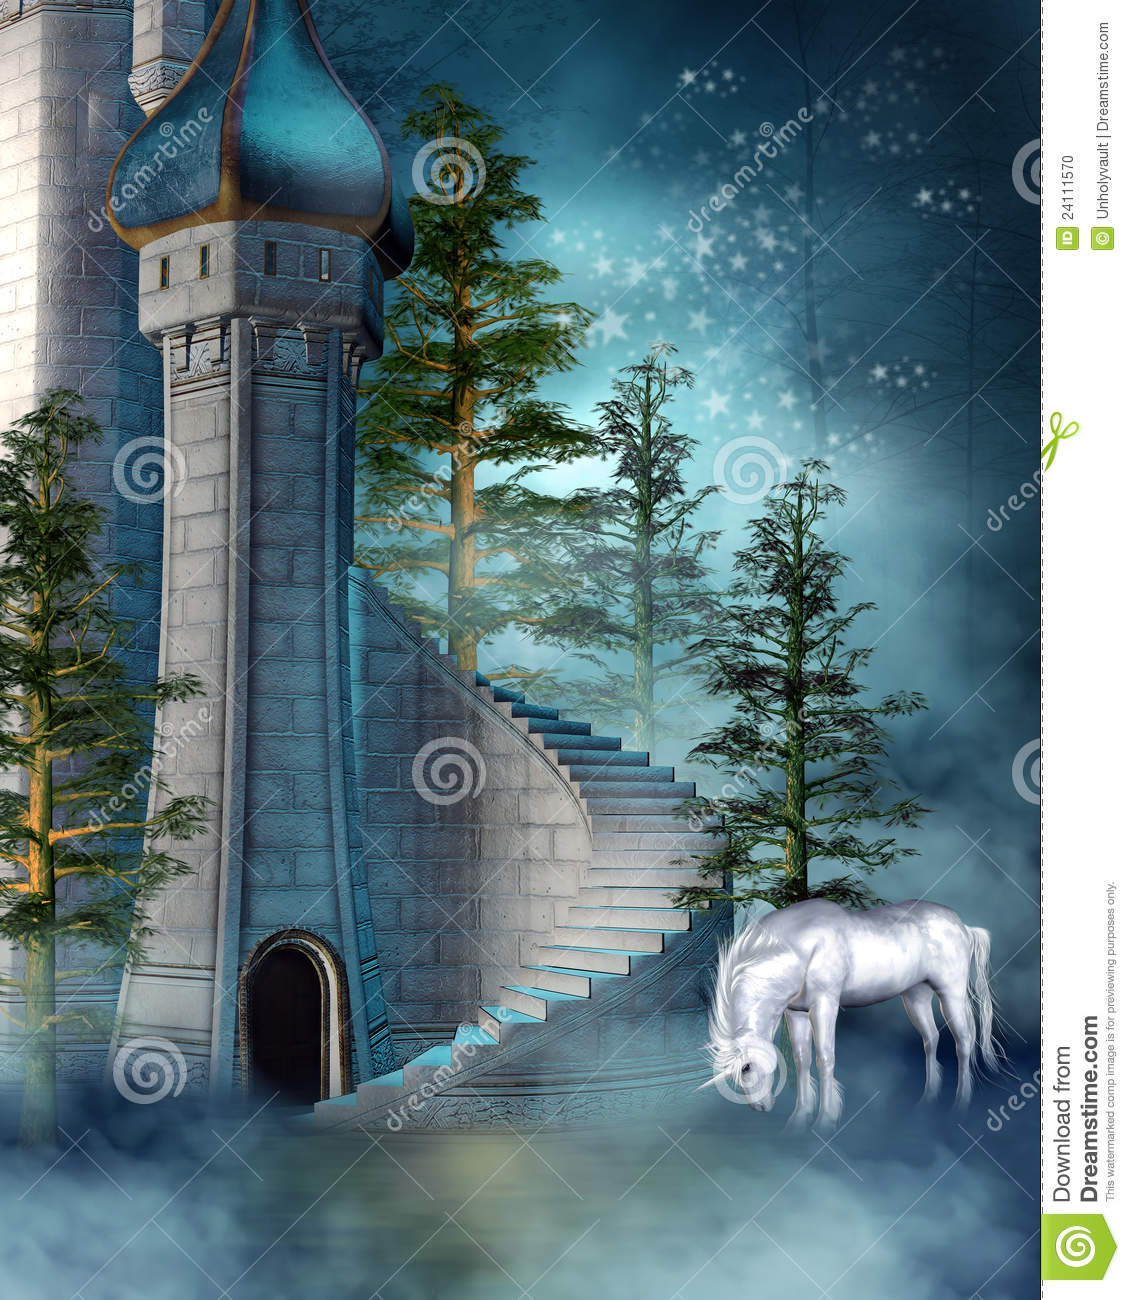 More similar stock images of ` Fantasy tower with a unicorn `